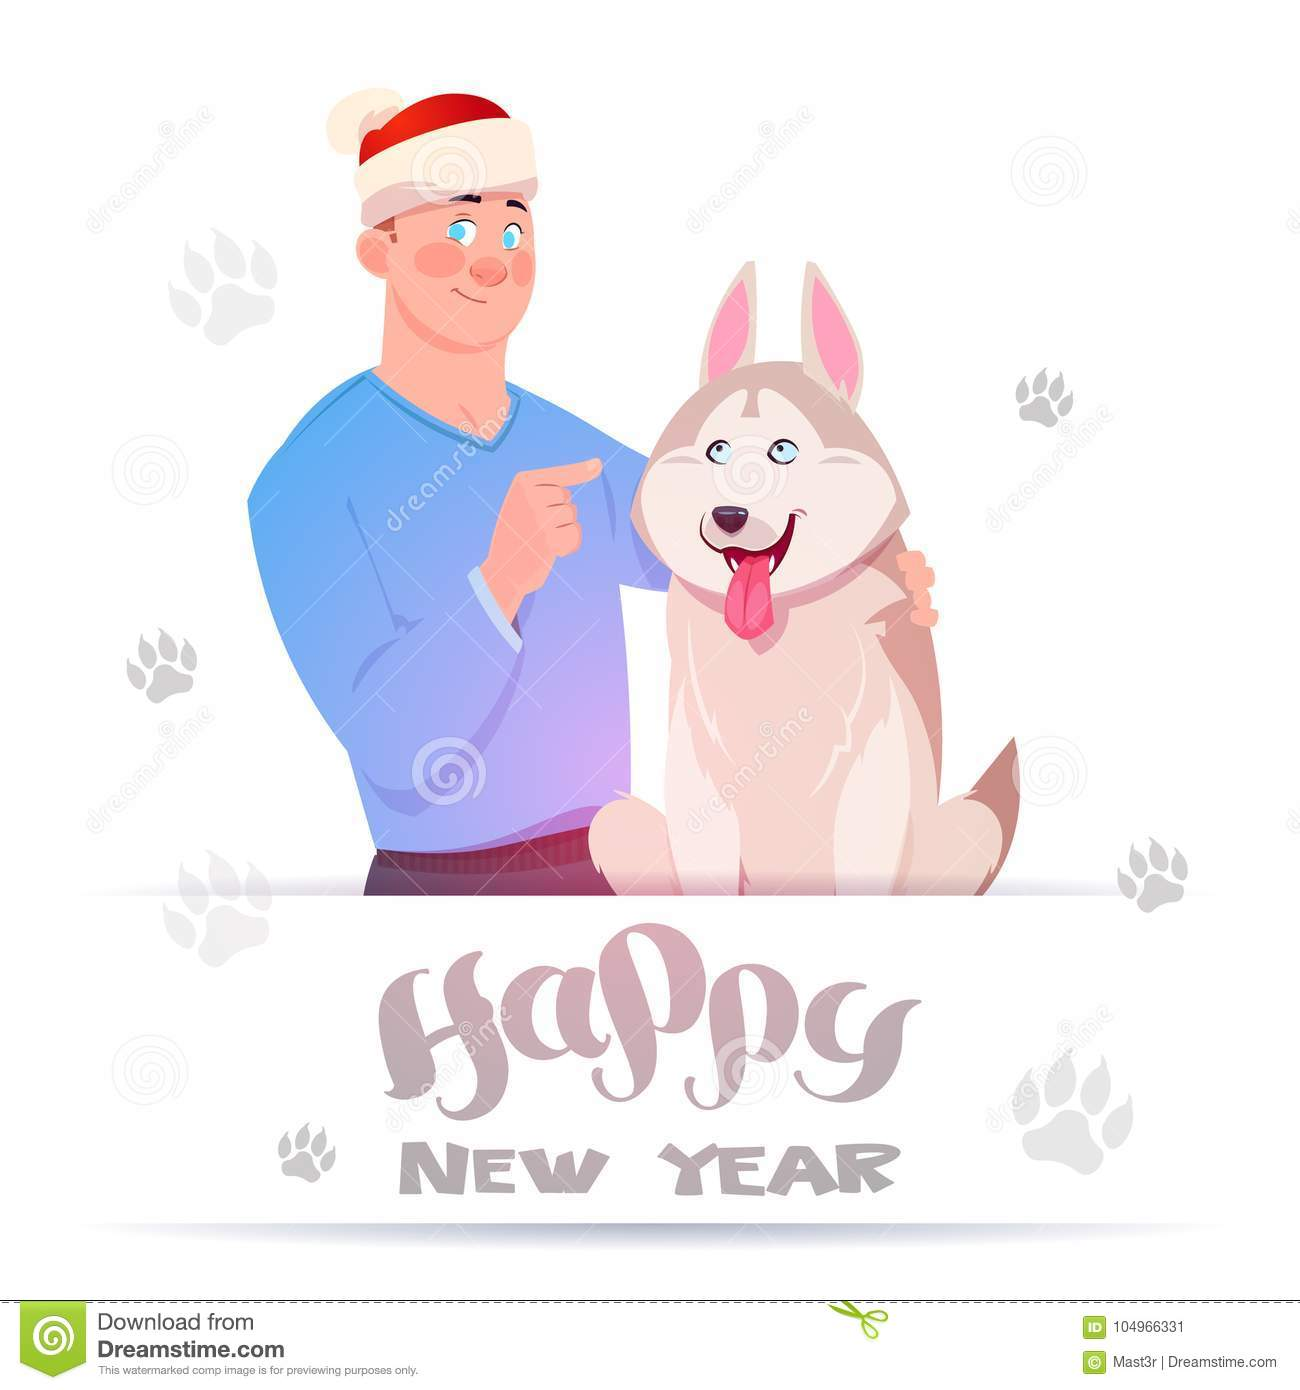 Happy New Year Card With Man In Santa Hat Embracing Cute Husky Dog